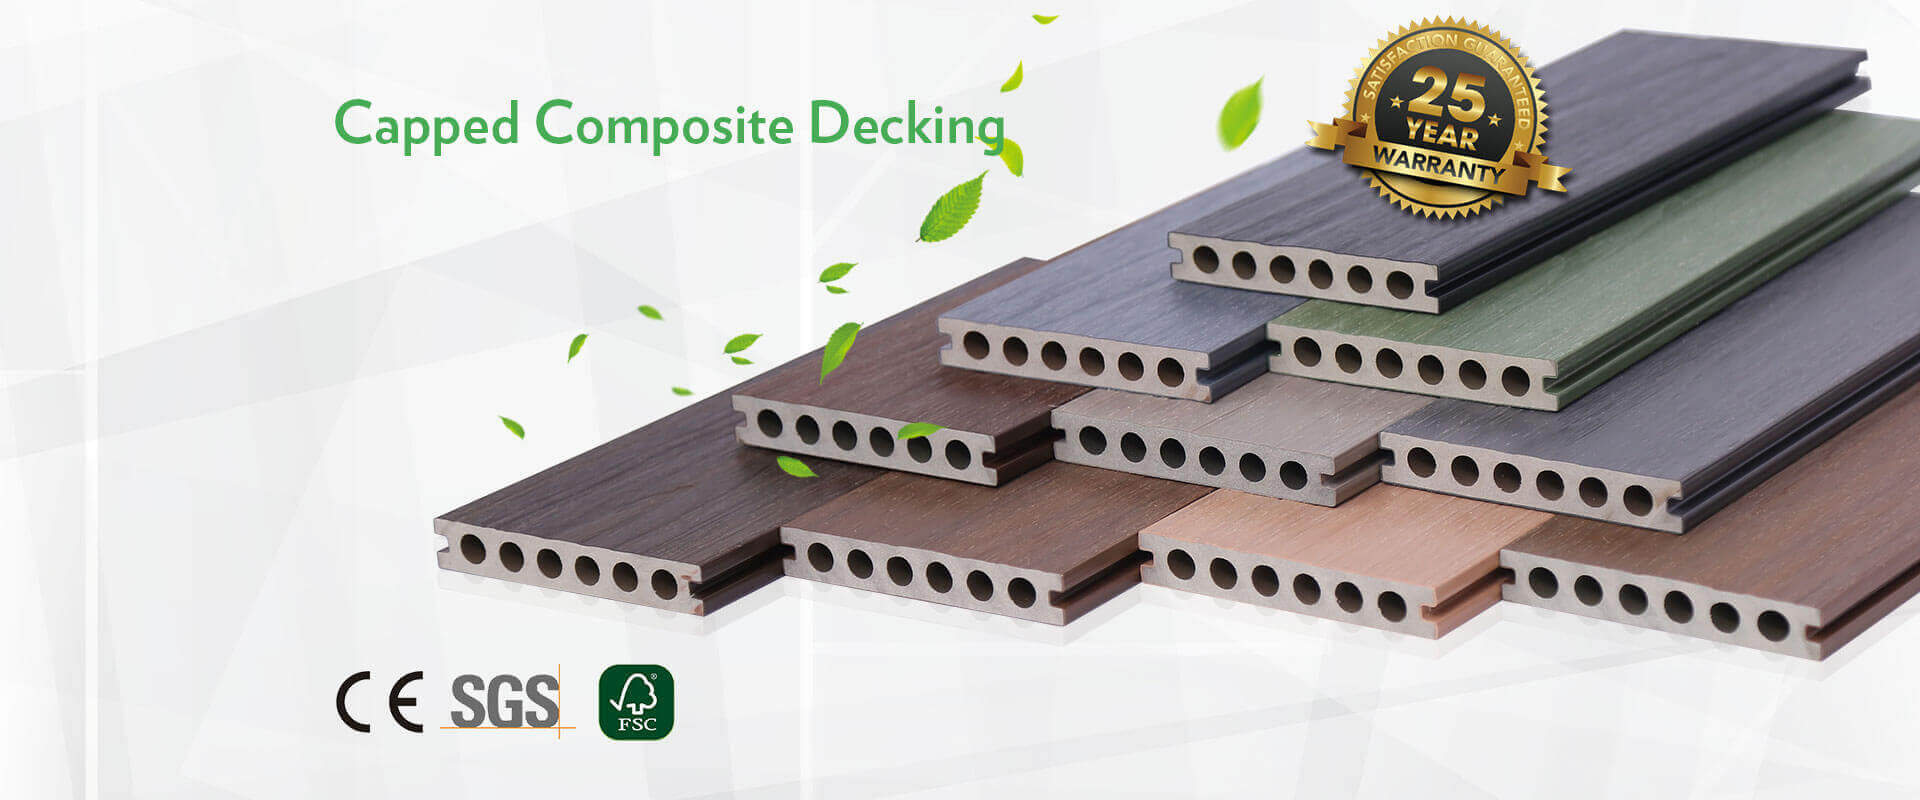 Capped Composite Decking